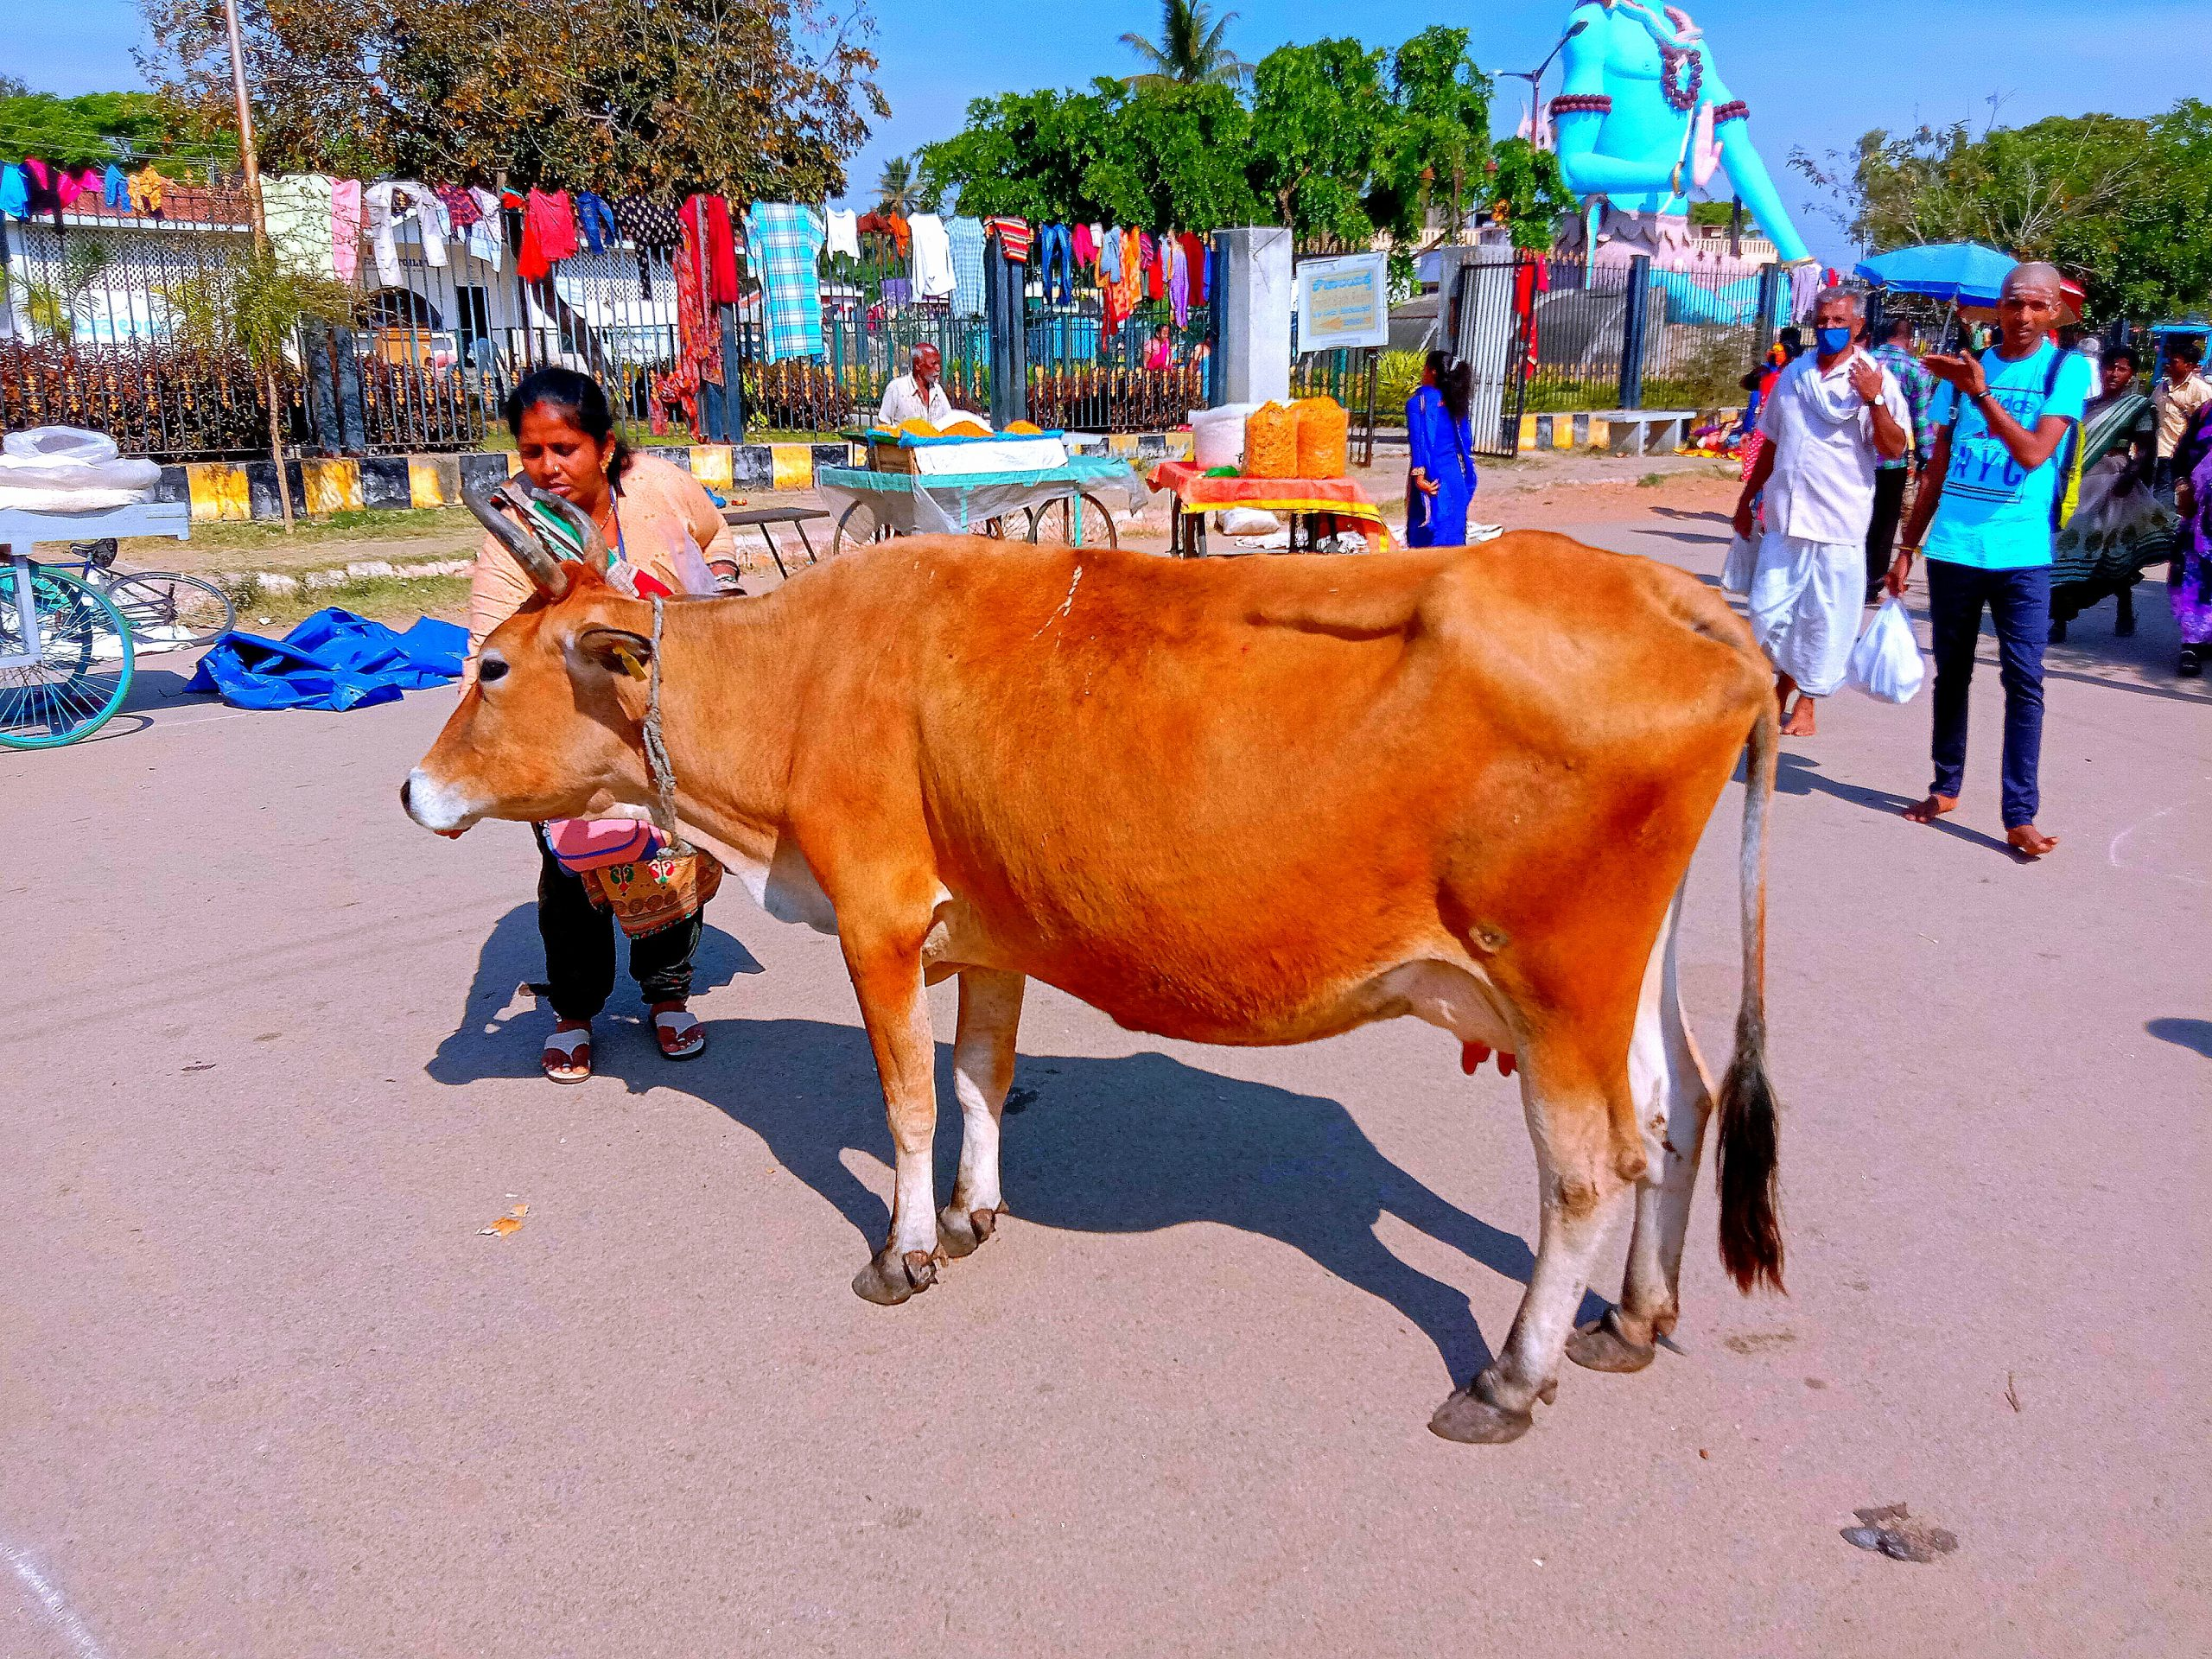 A cow at a market place